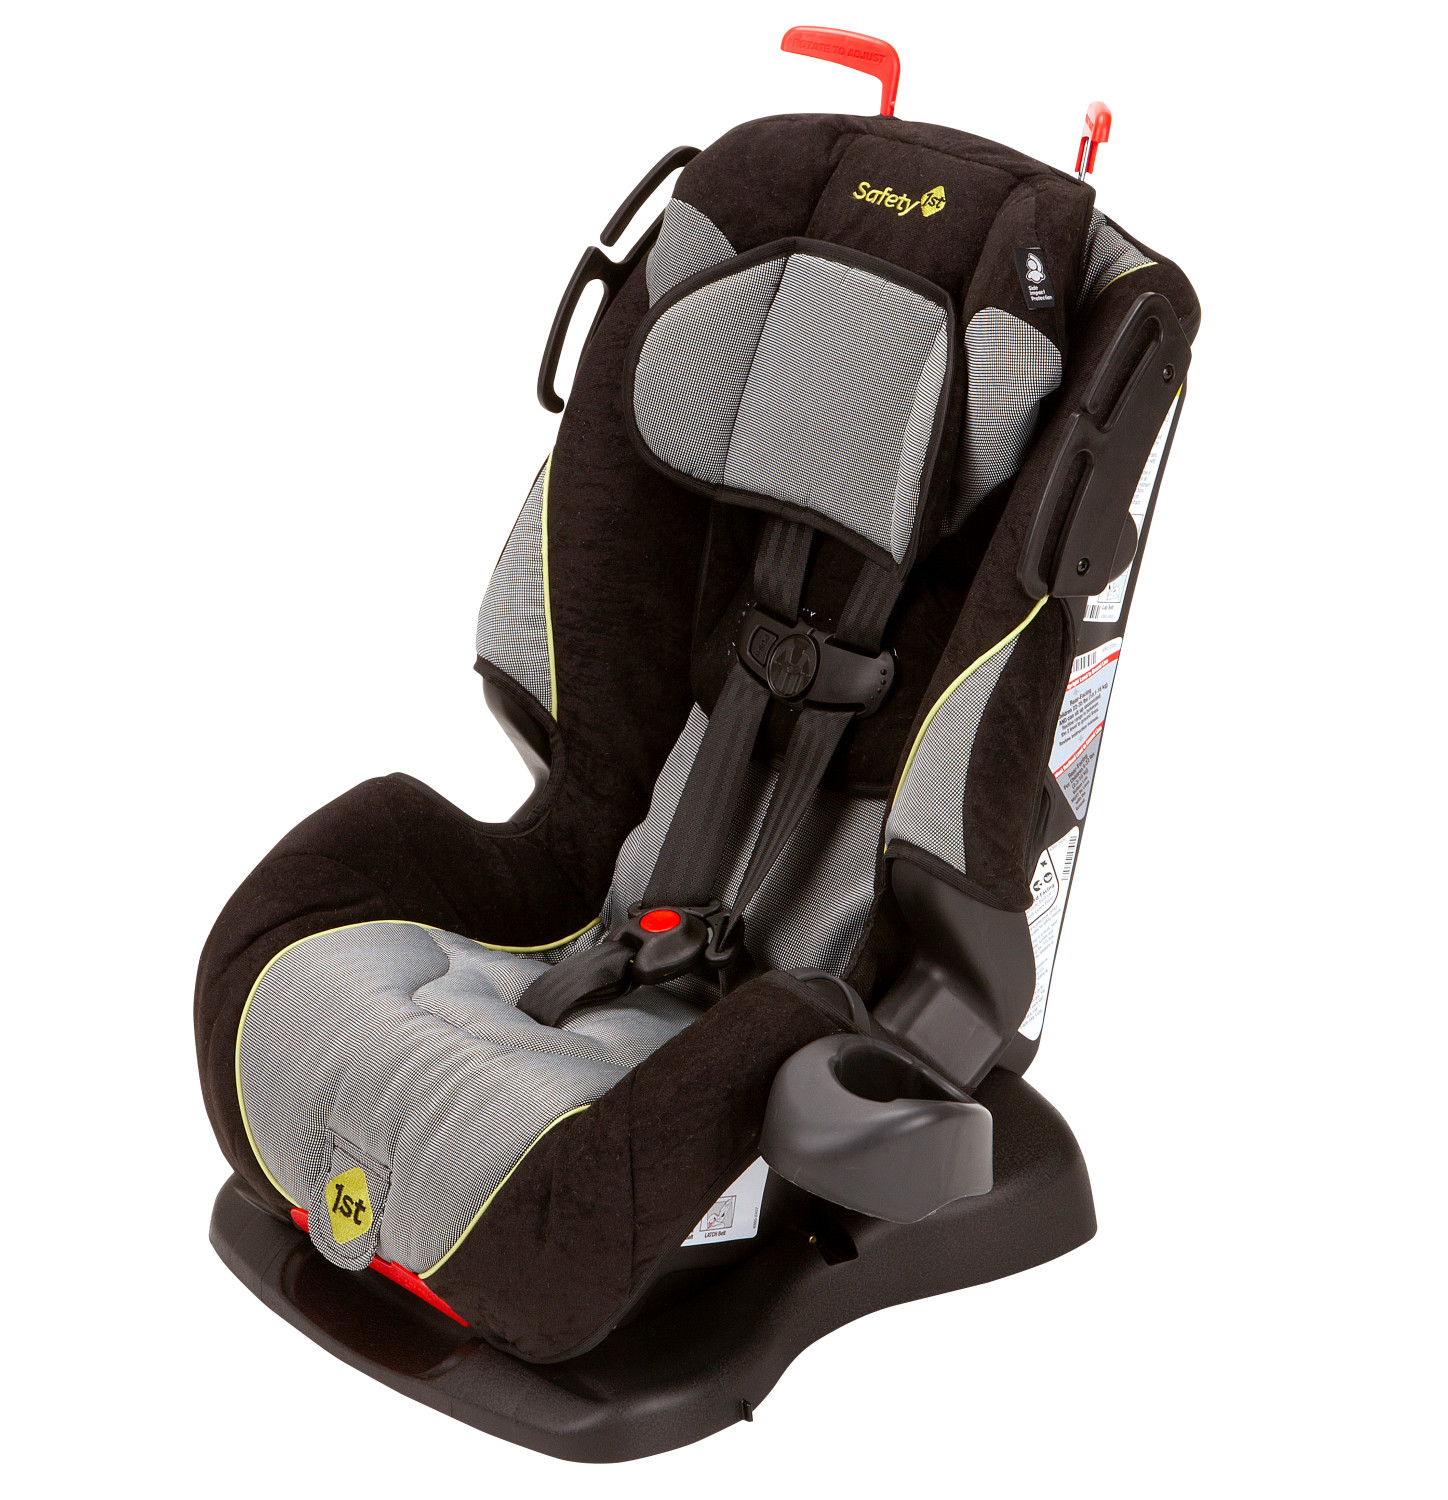 safety 1st all in one sport convertible car seat. Black Bedroom Furniture Sets. Home Design Ideas